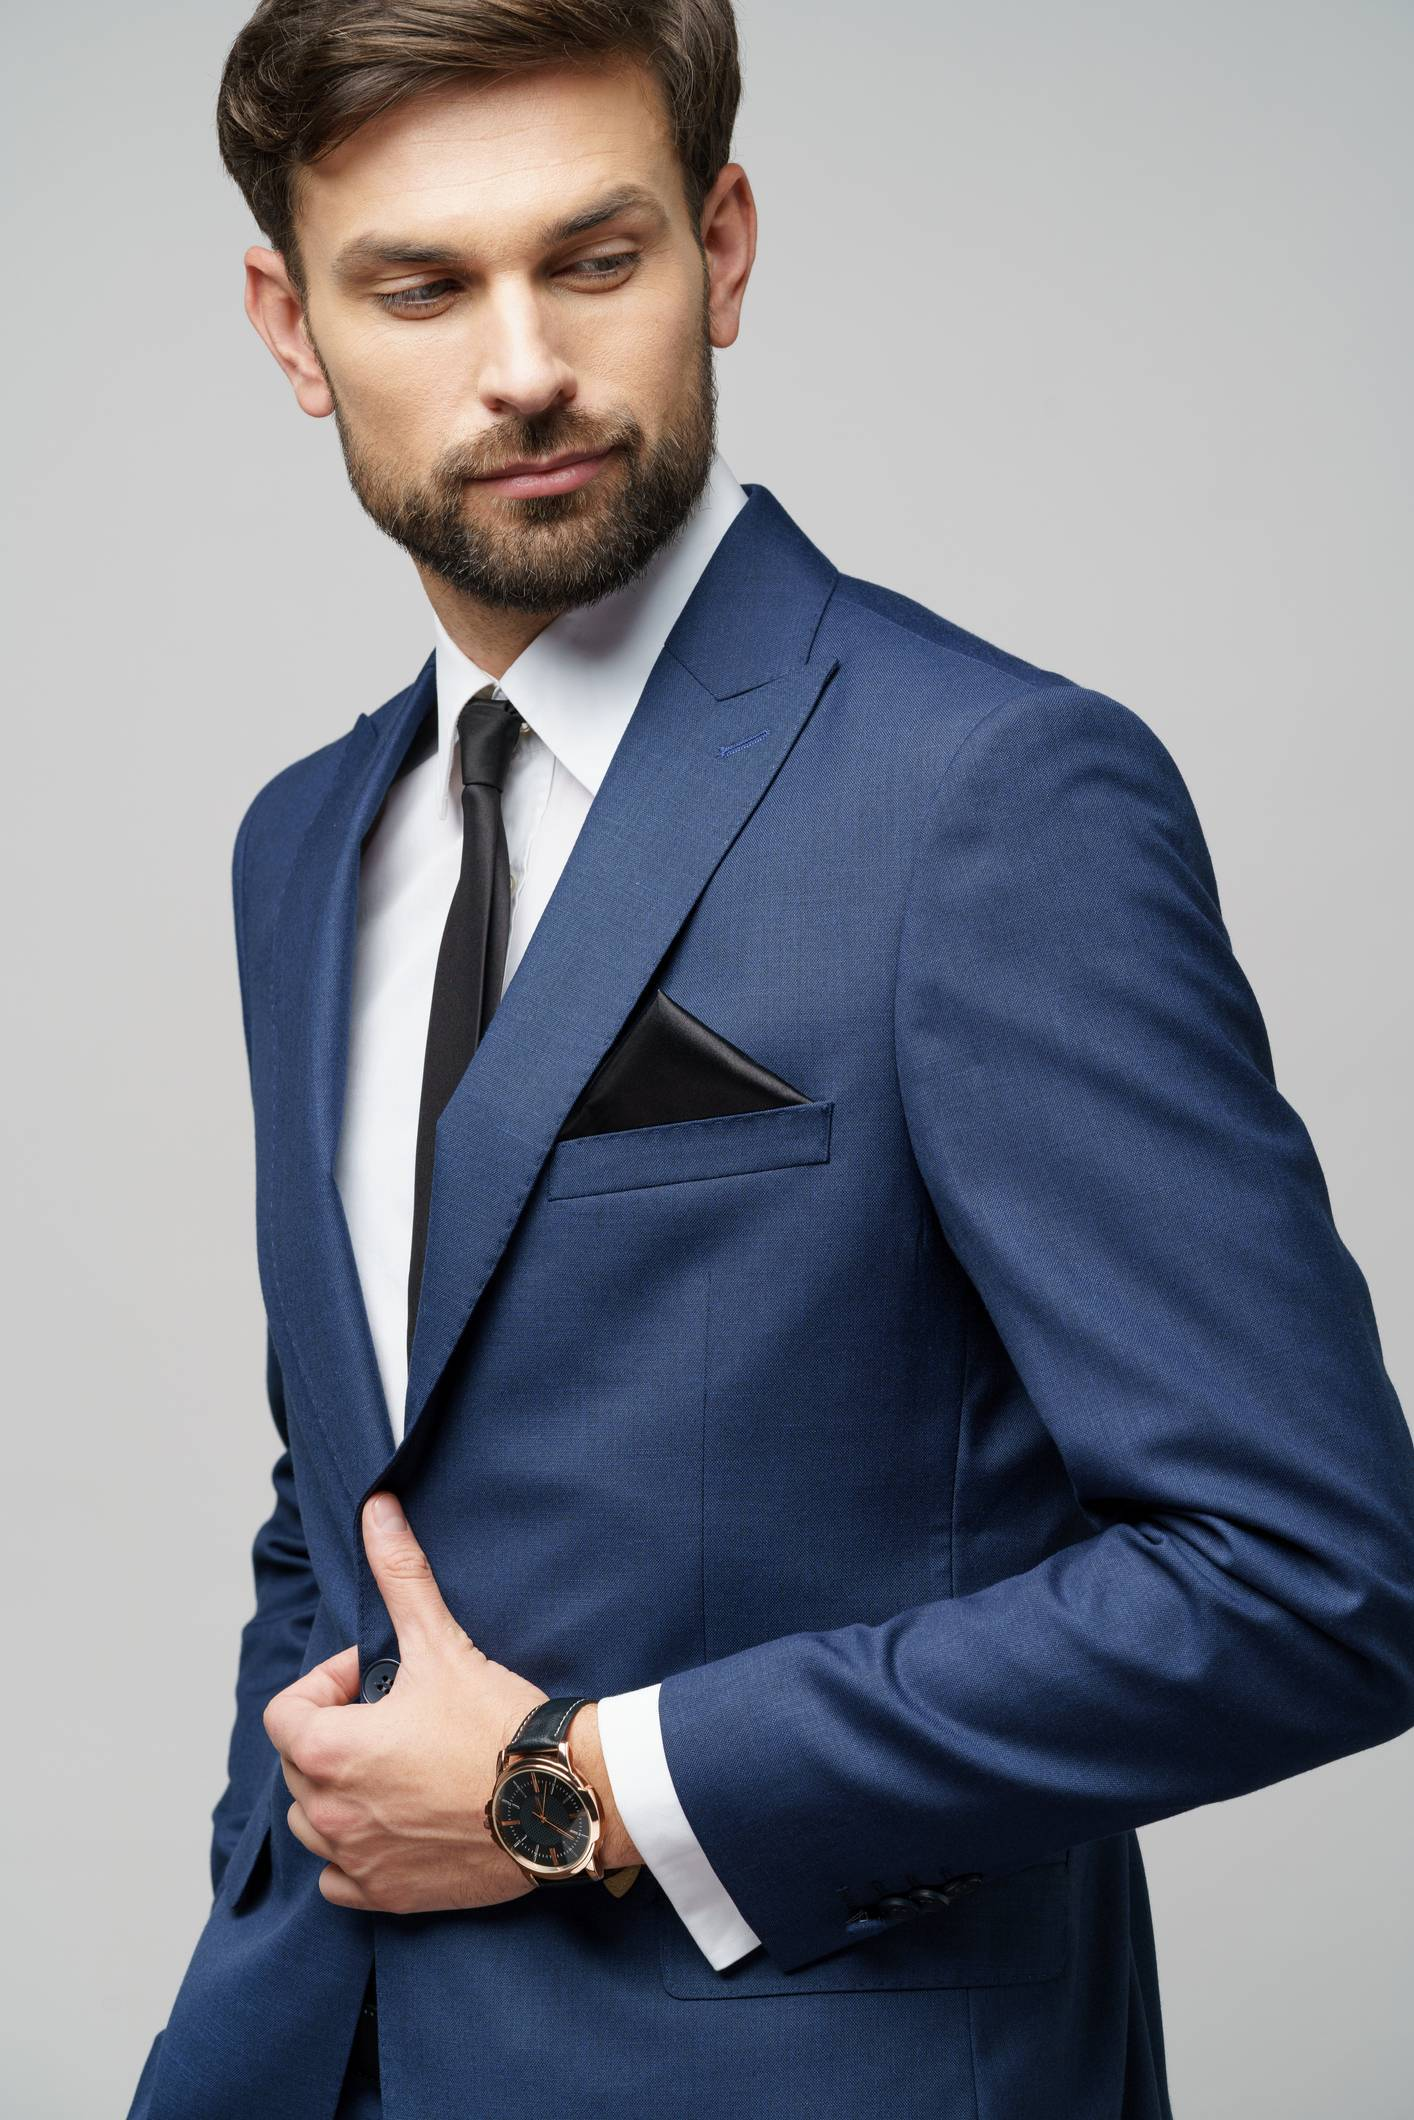 costume pour homme occasion formelle